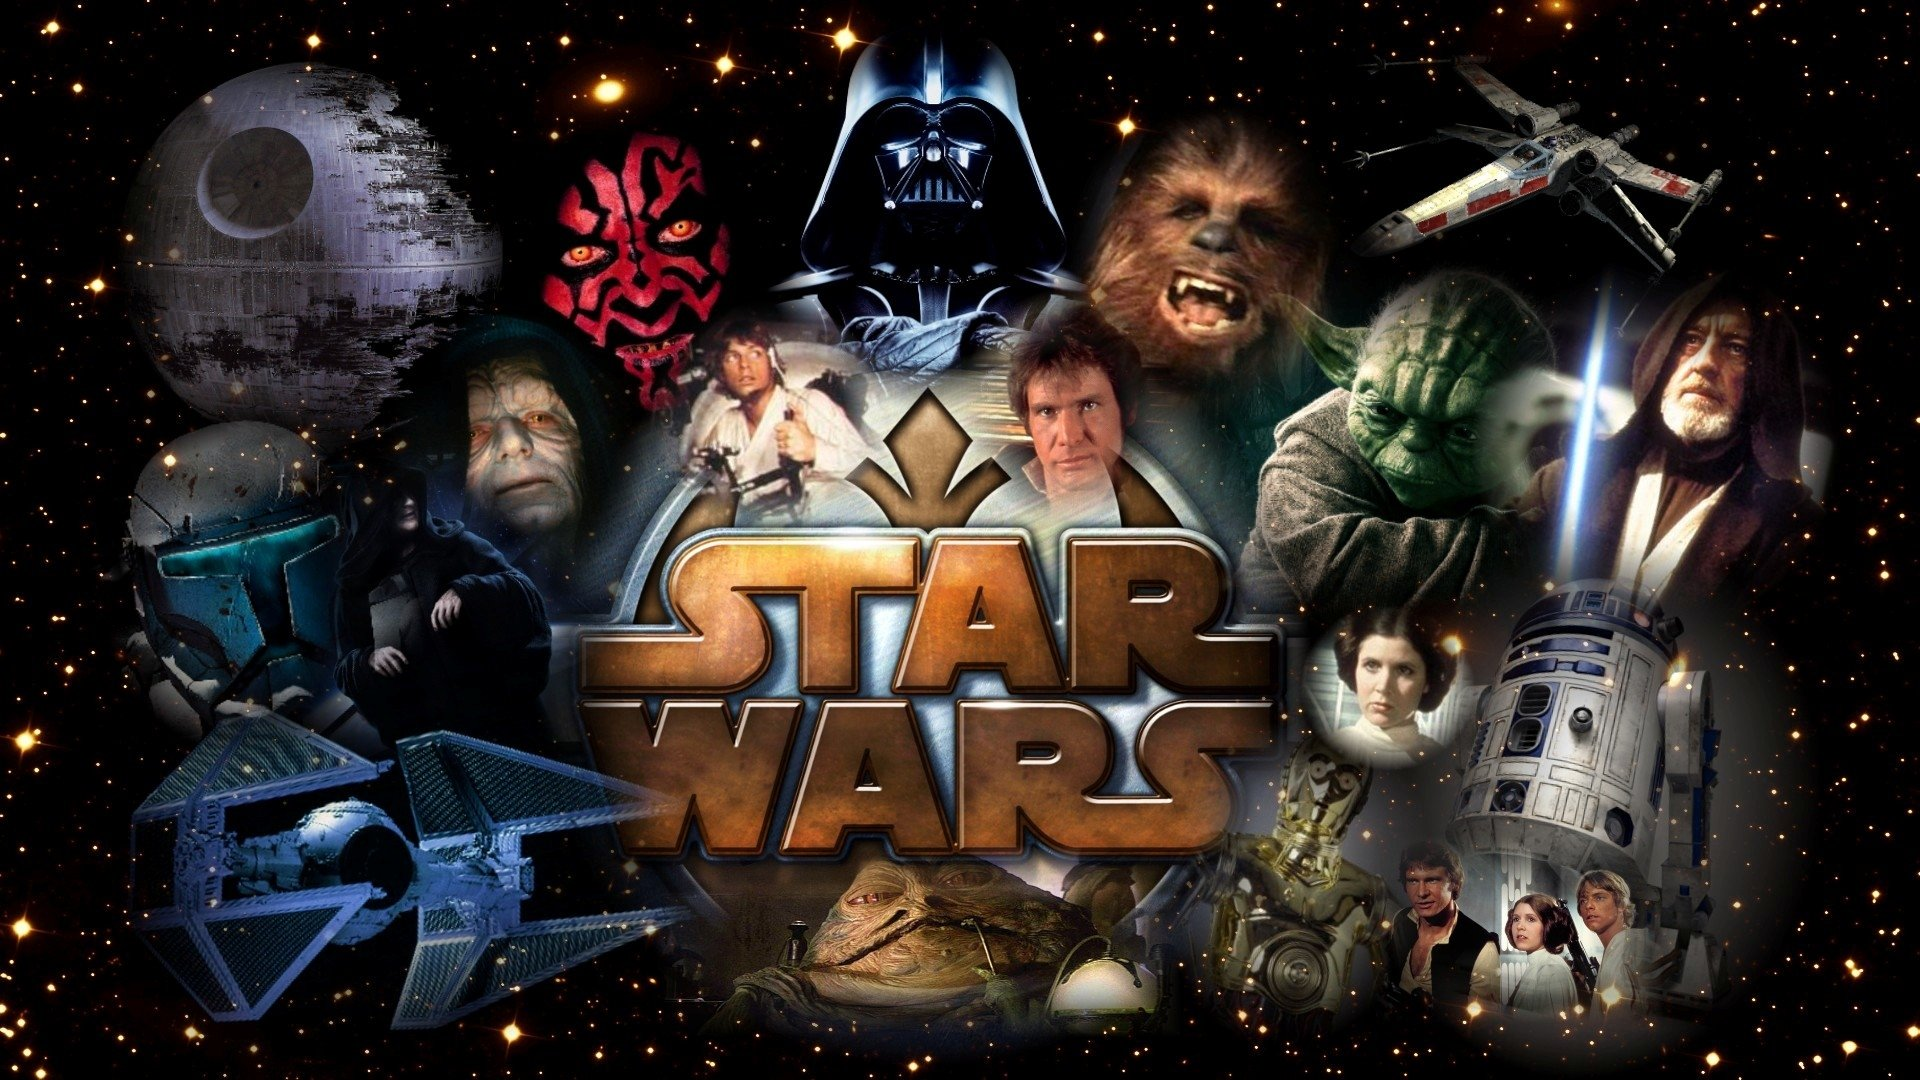 Movie - Star Wars  Darth Vader Darth Maul Yoda R2-D2 Obi-Wan Kenobi X-Wing TIE Fighter Death Star Alec Guinness Chewbacca Wallpaper